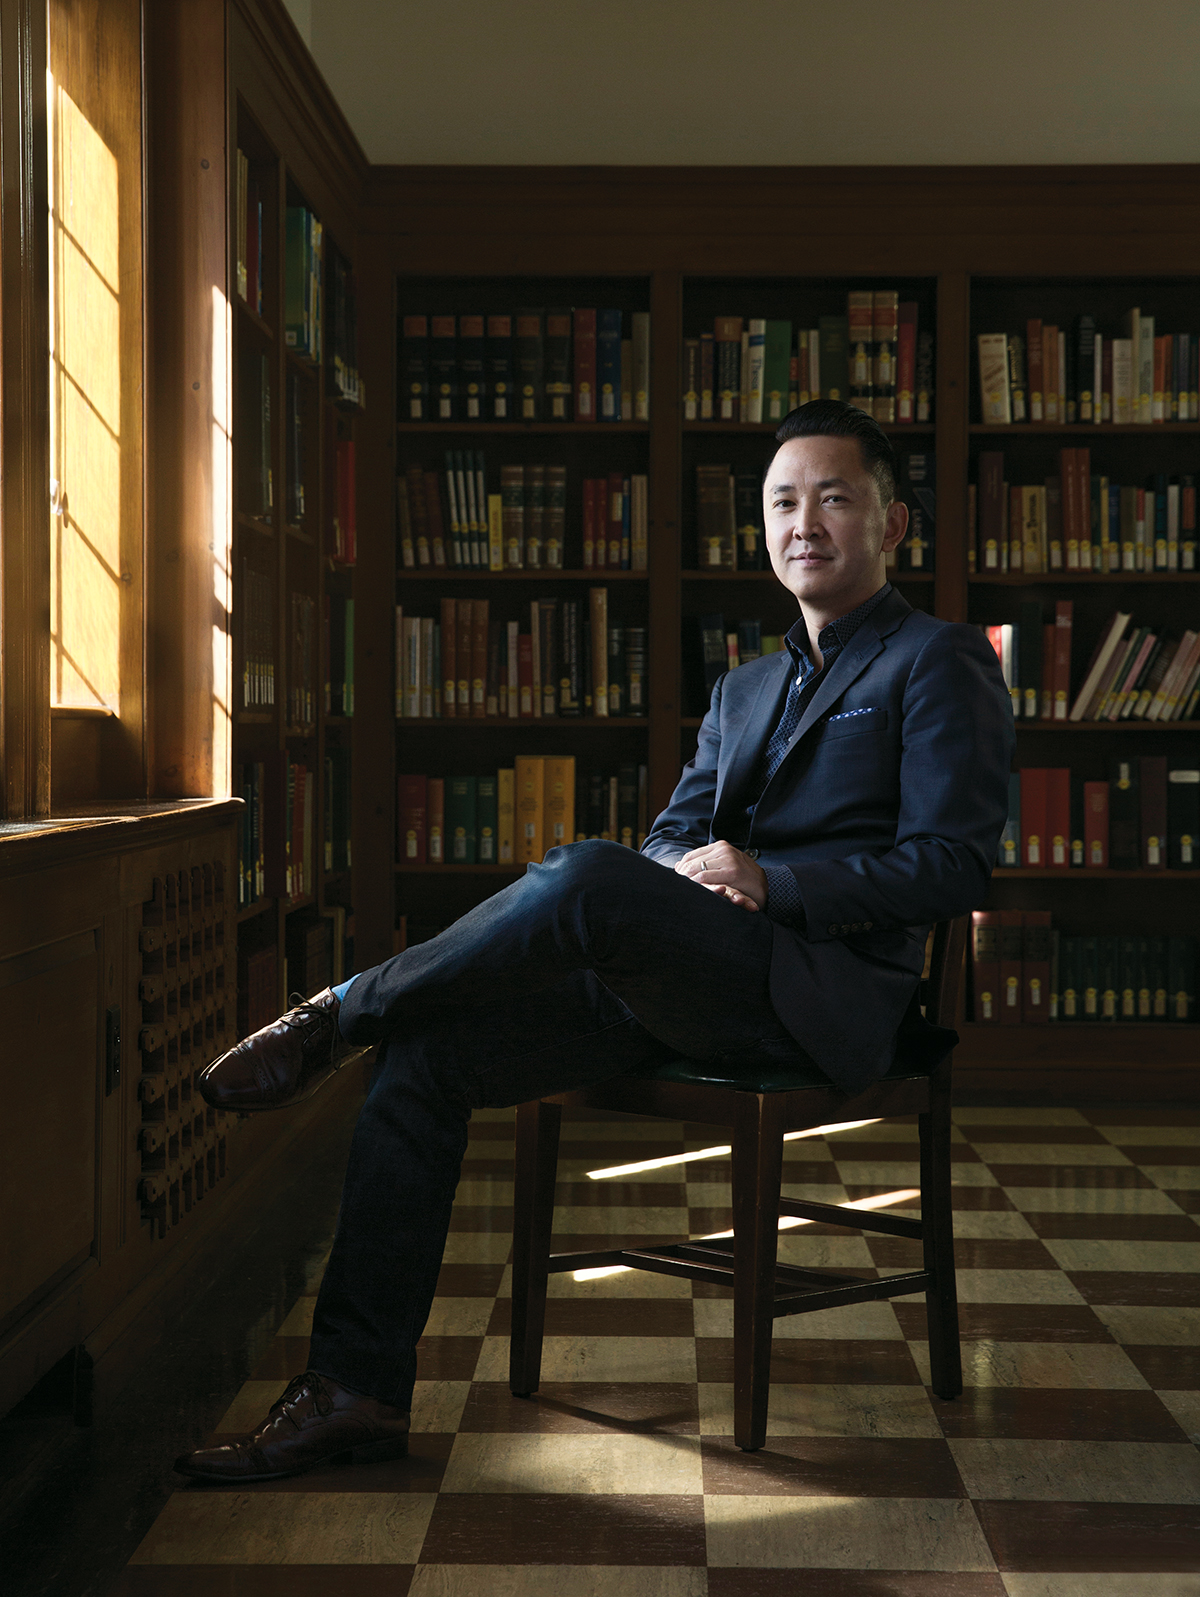 Author Viet Thanh Nguyen and How Winning the Pulitzer Prize For Fiction Changed His Life - Orange Coast